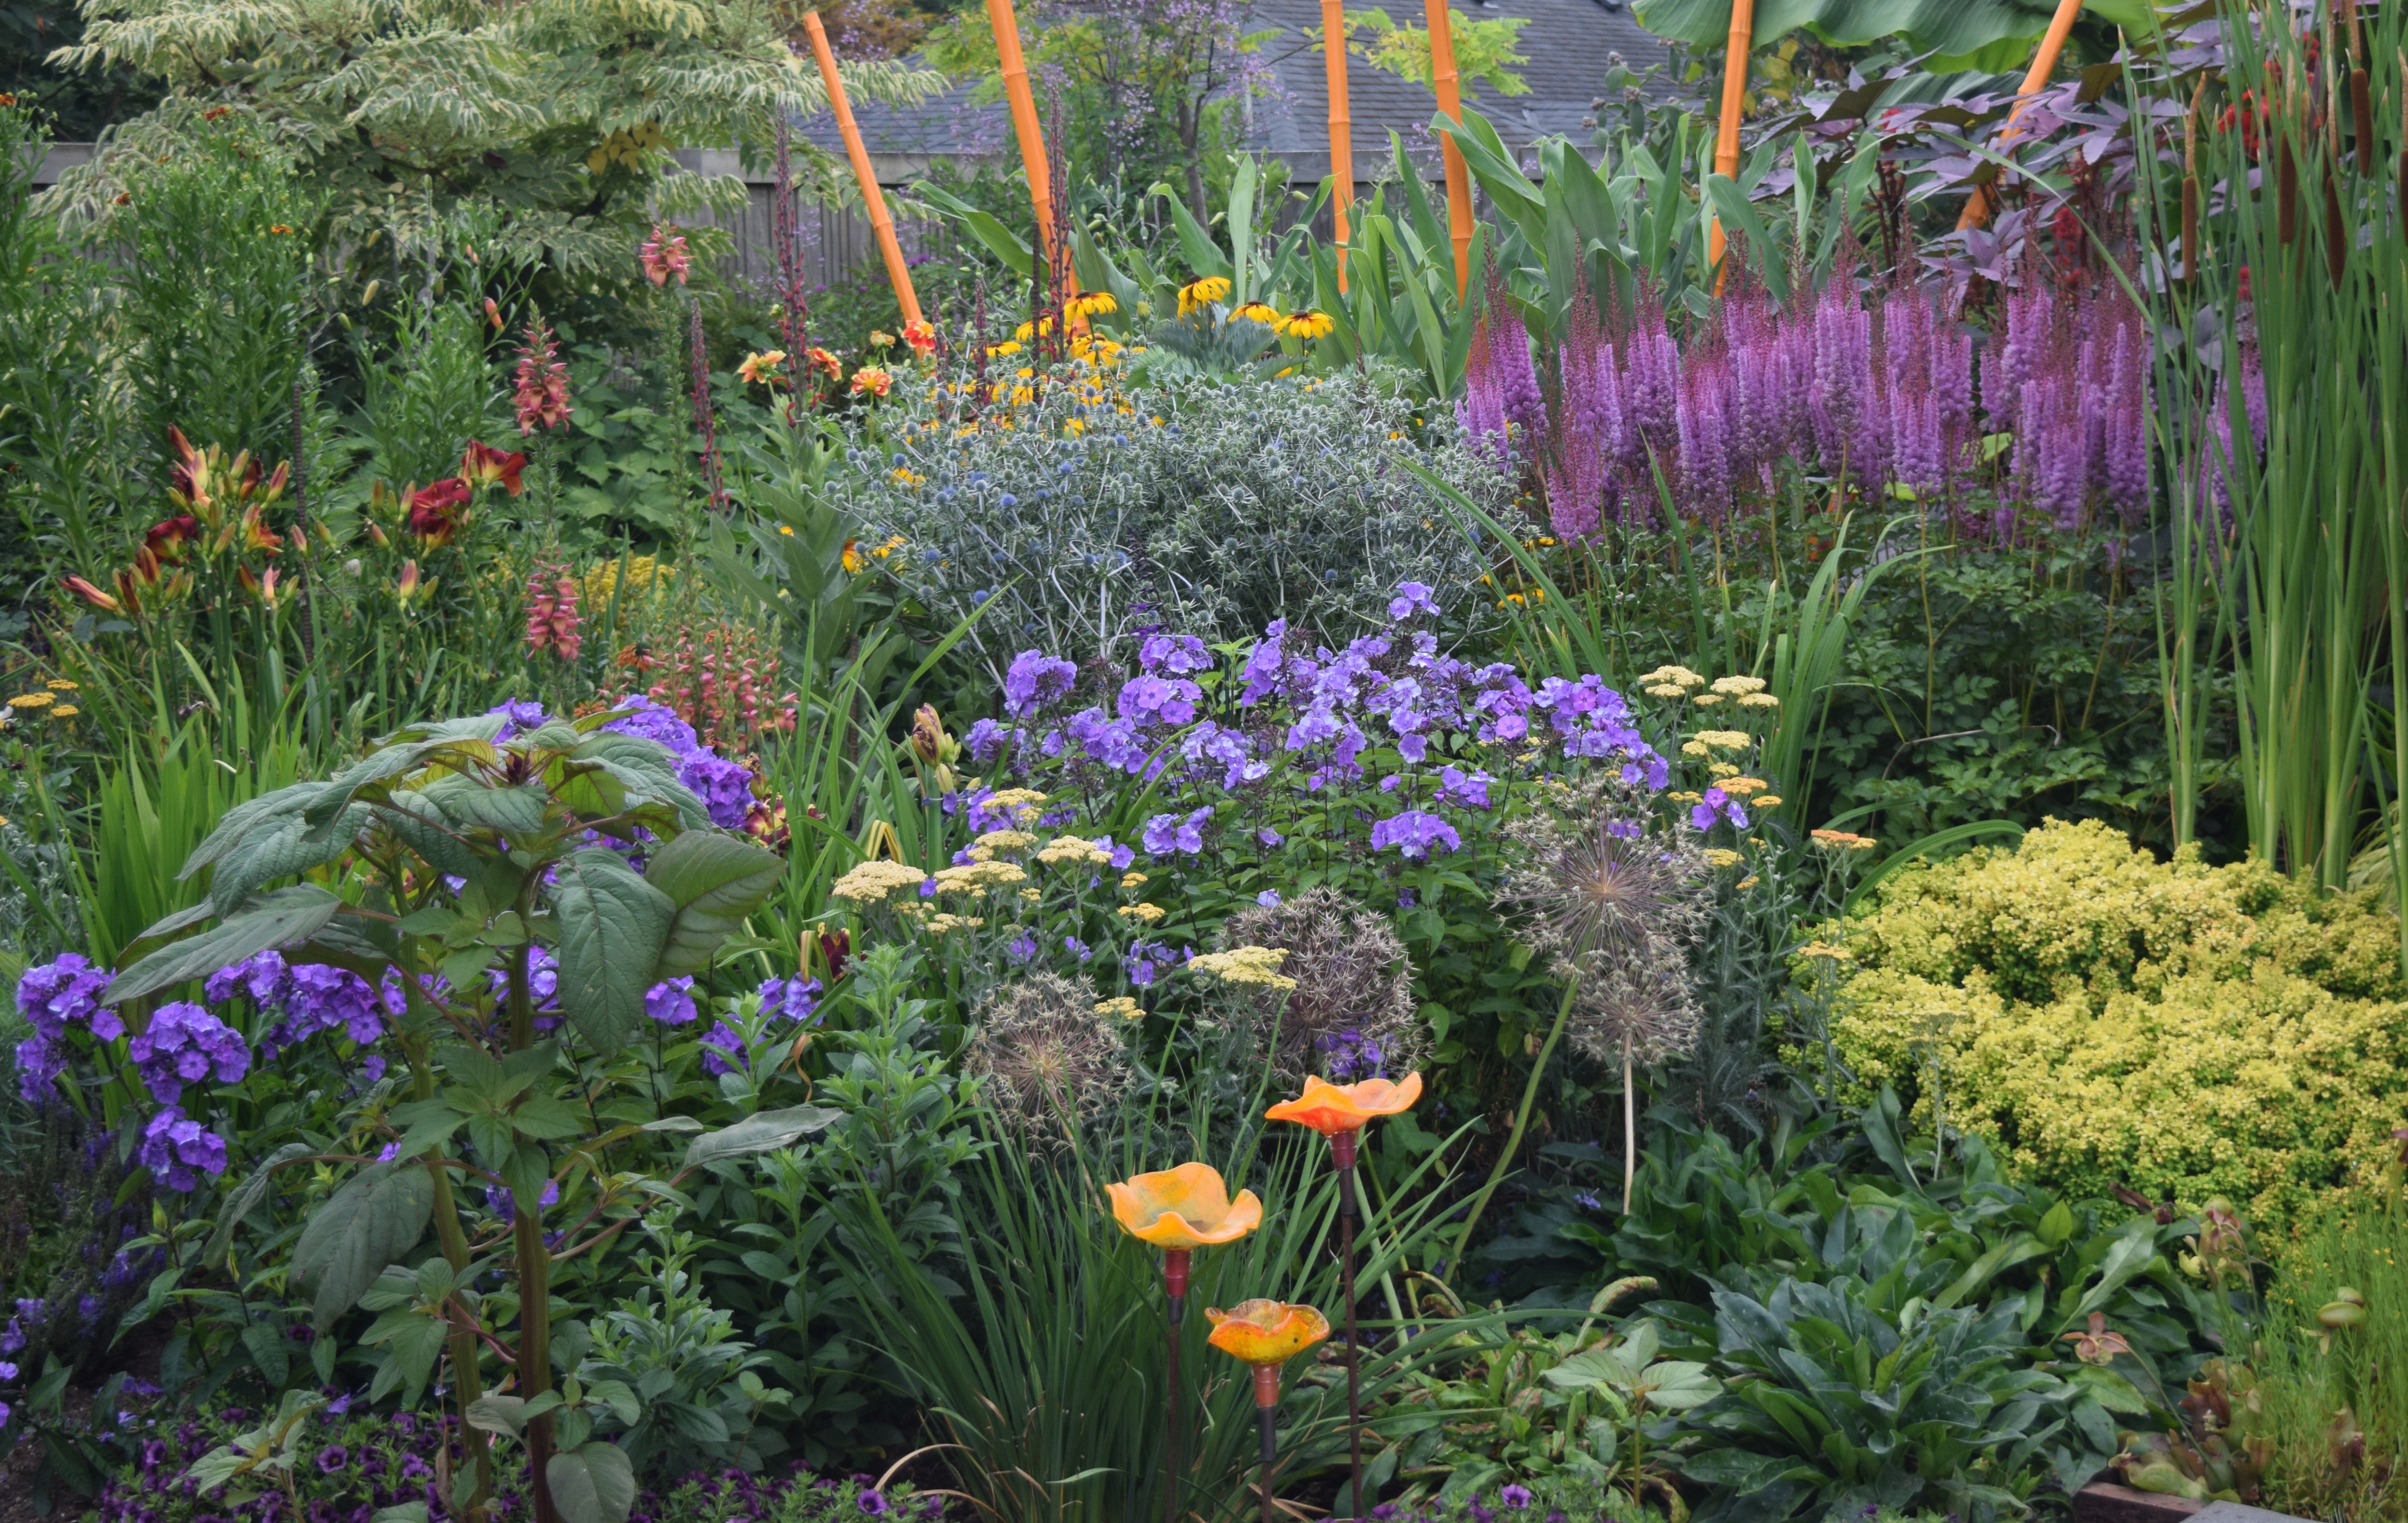 Example of a garden created to support bees.